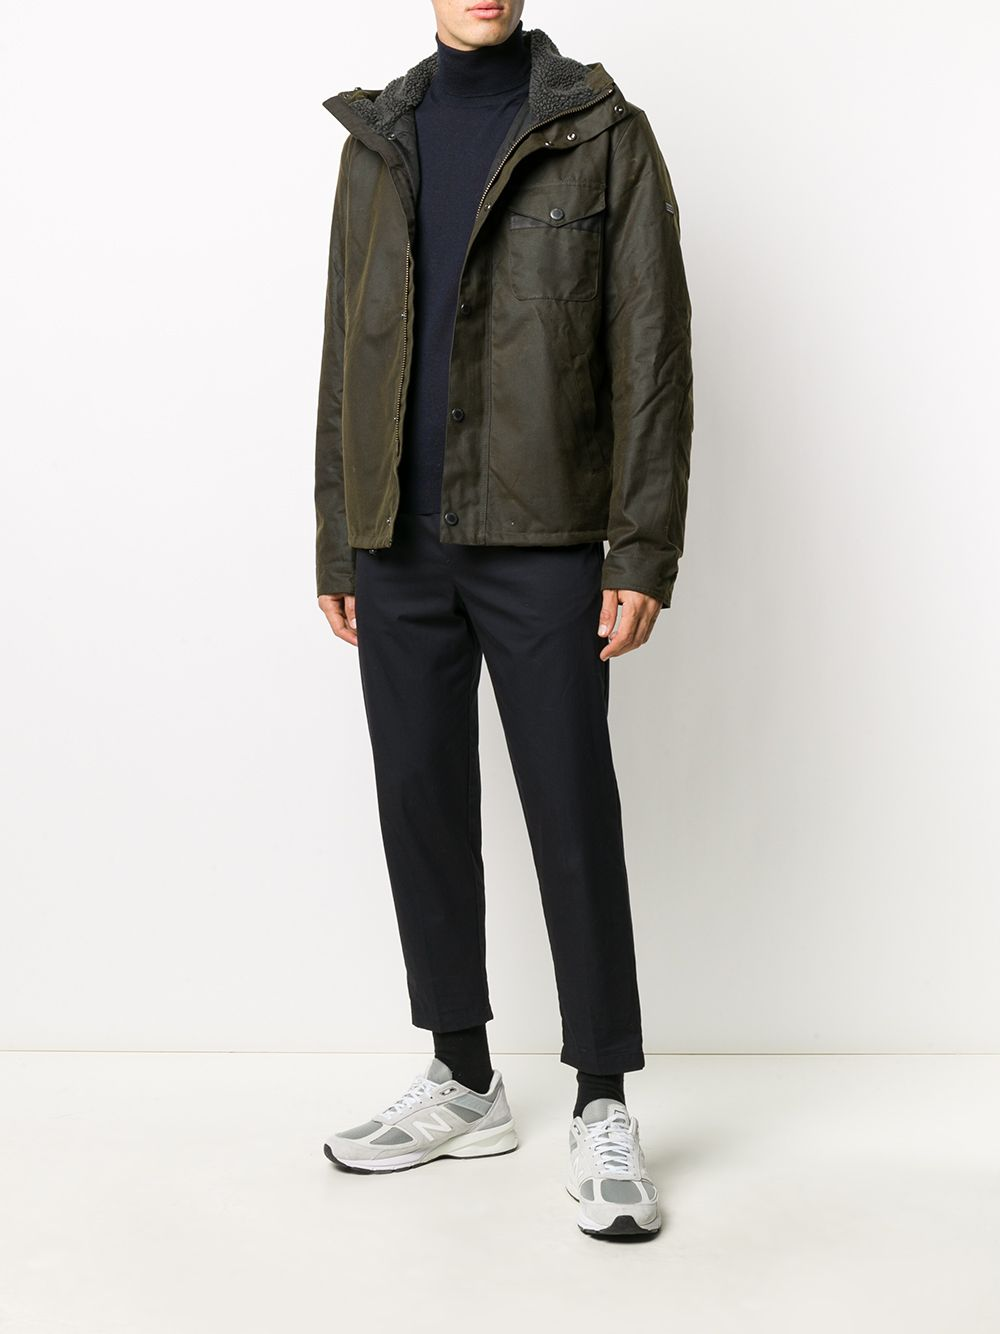 giacca impermeabile uomo verde BARBOUR | Giacche | MWX1372OL51